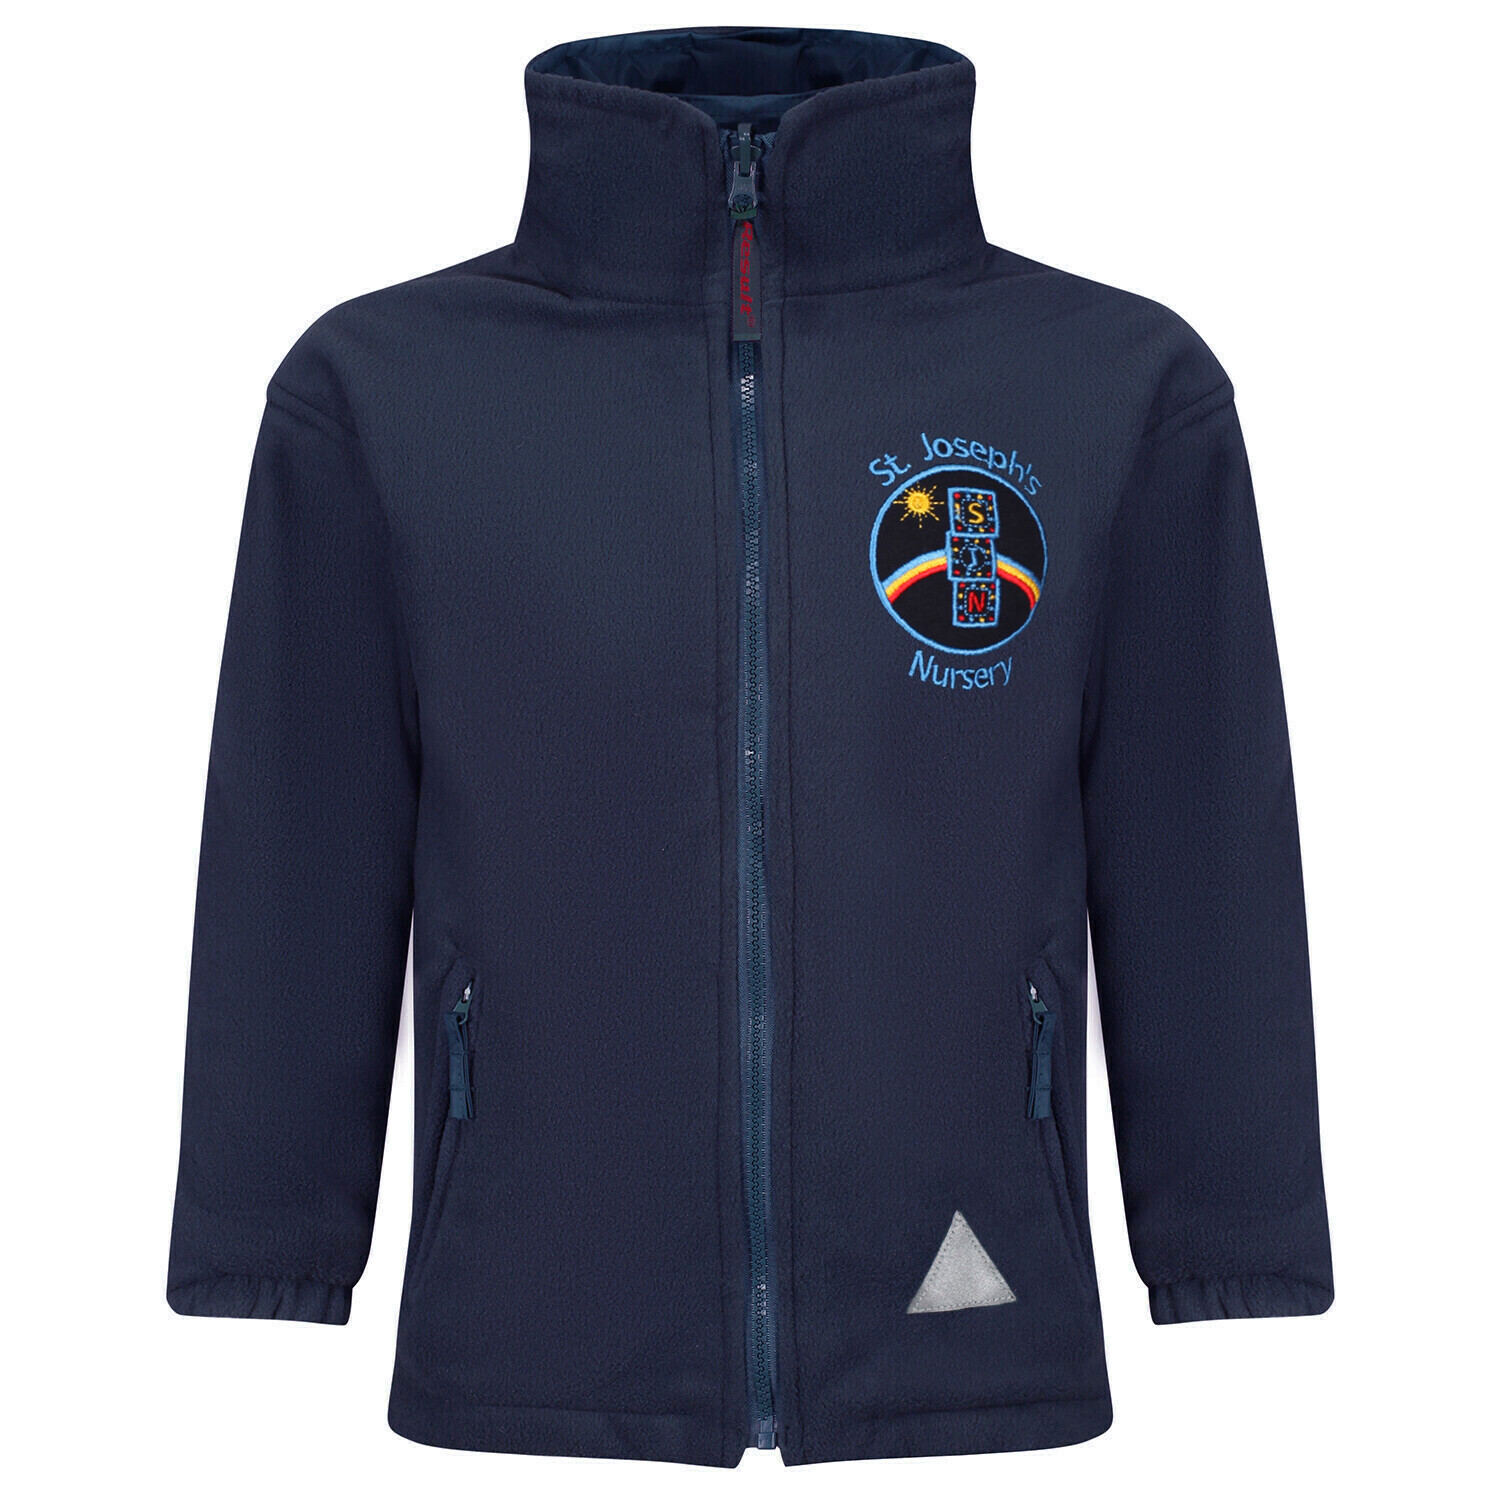 St Joseph's Nursery Staff Fleece (Unisex) (RCSRS36)